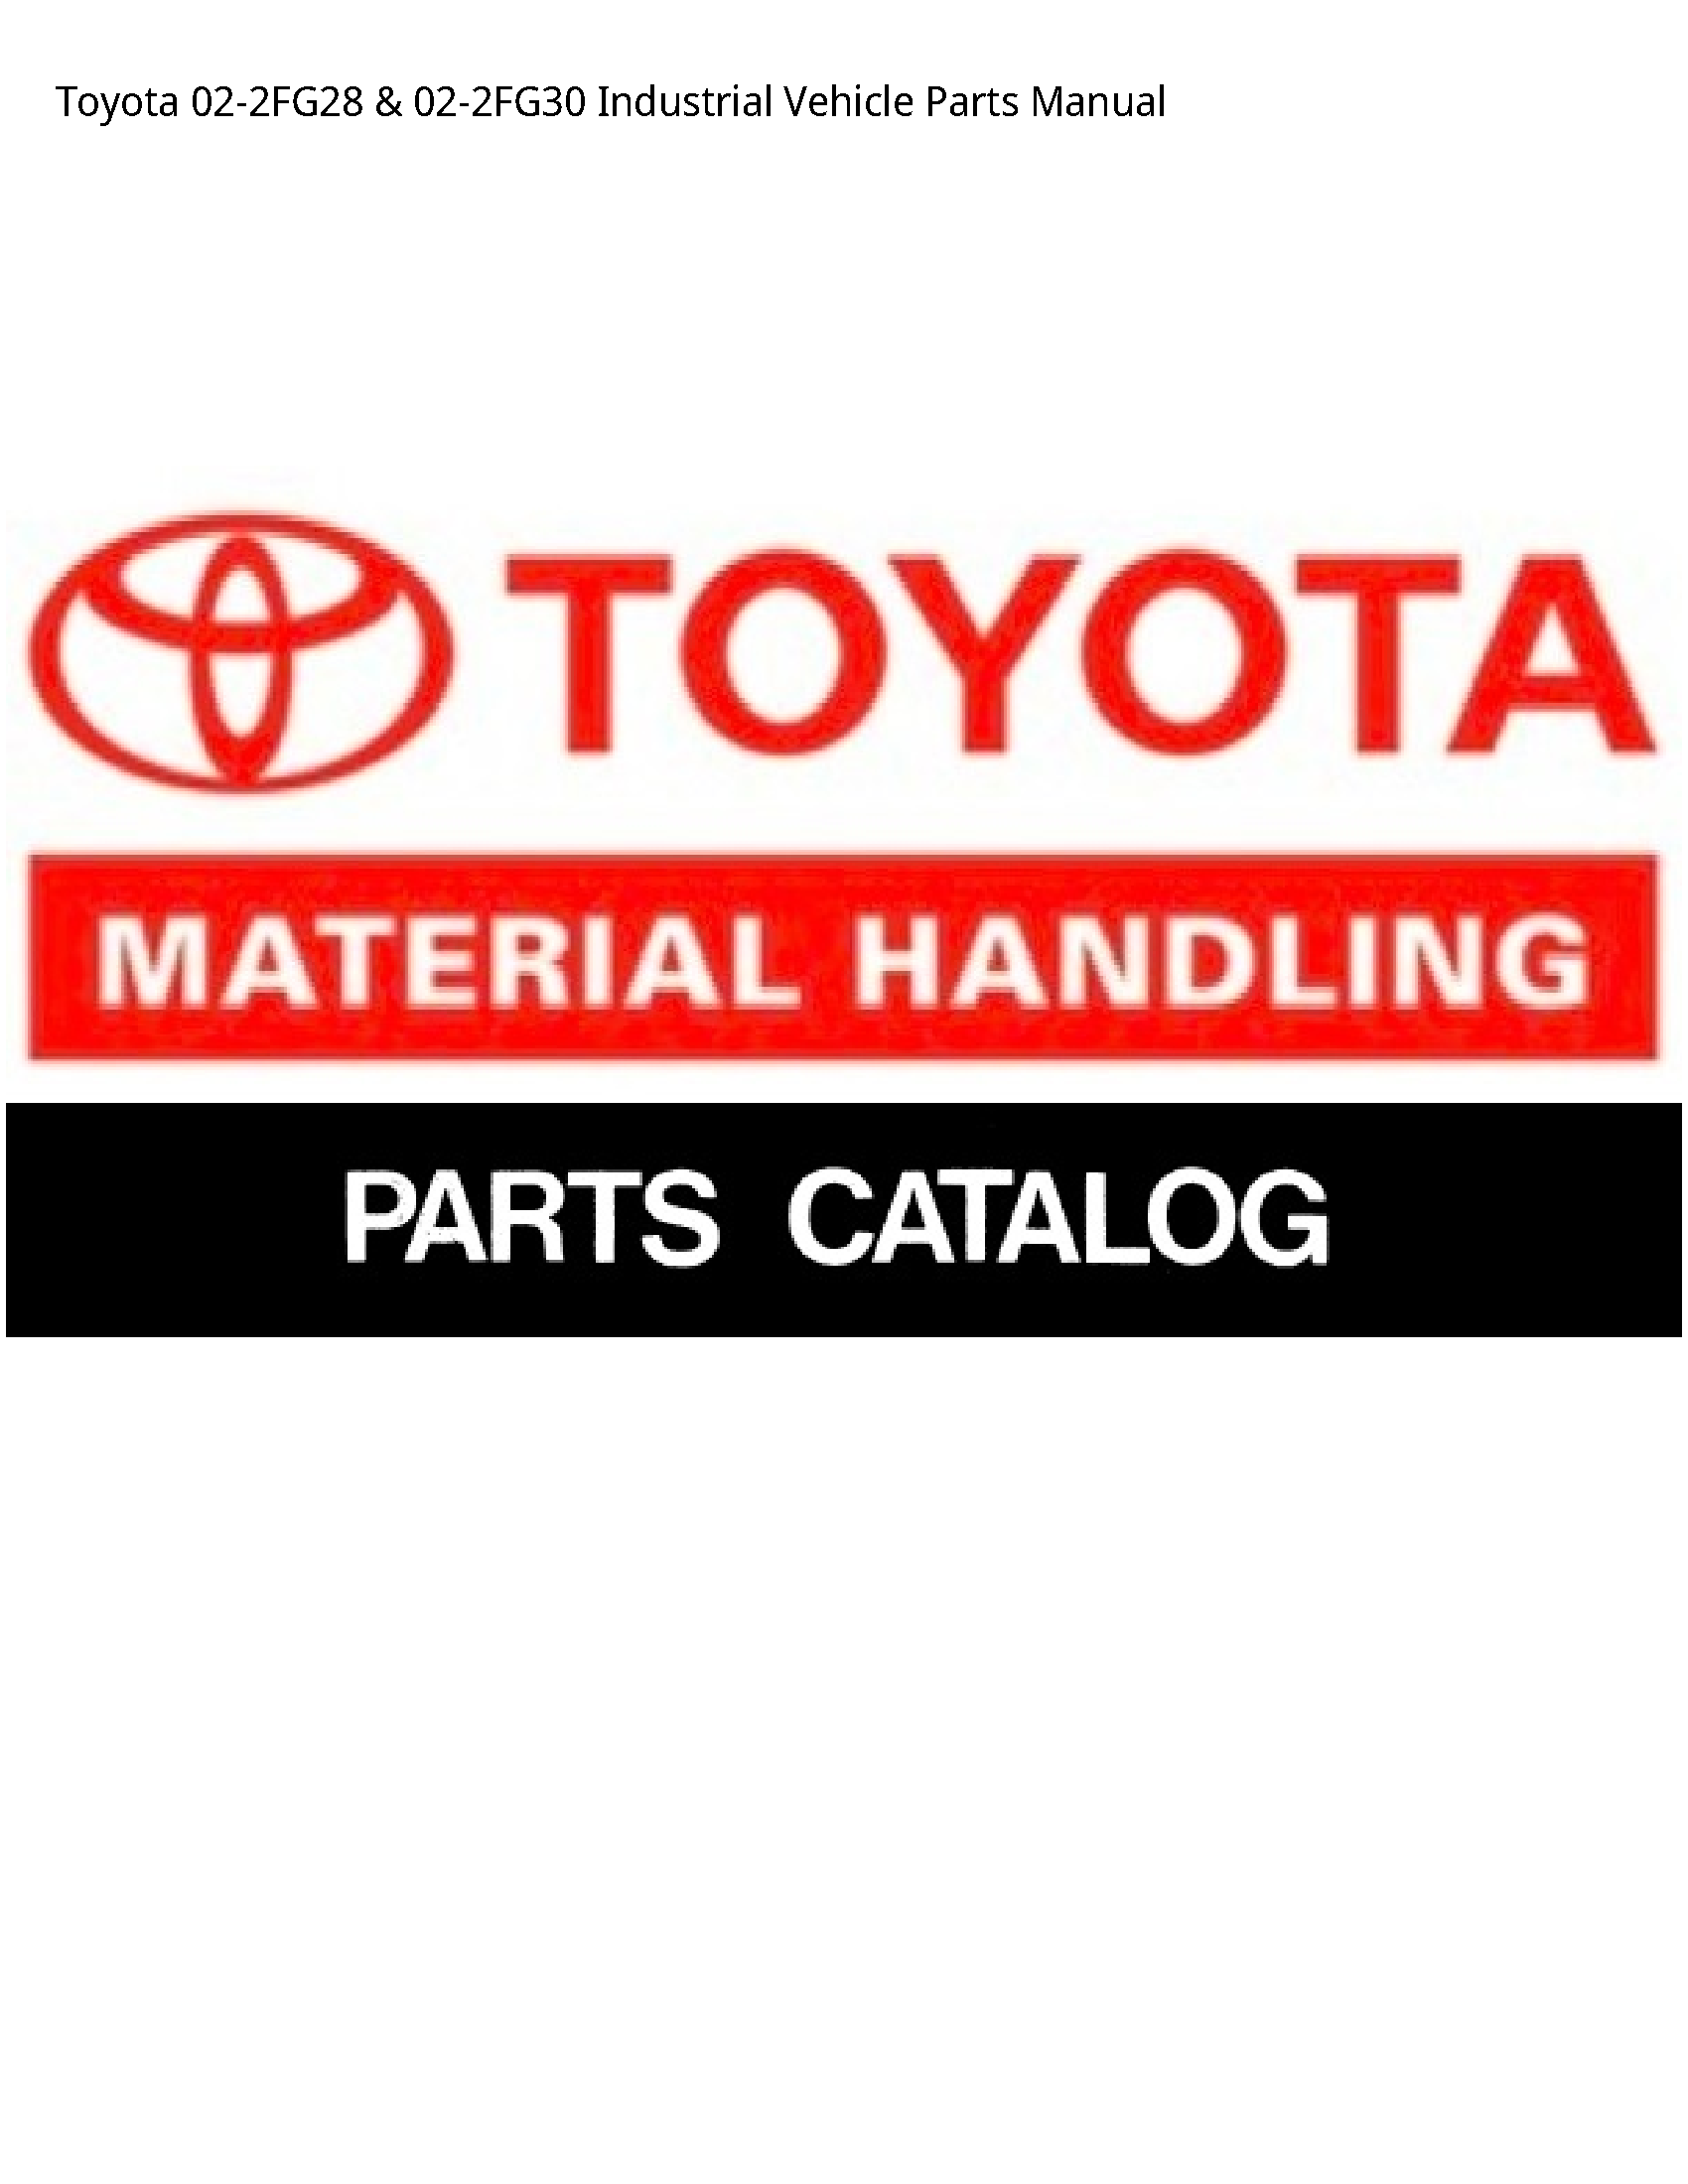 Toyota 02-2FG28 Industrial Vehicle Parts manual